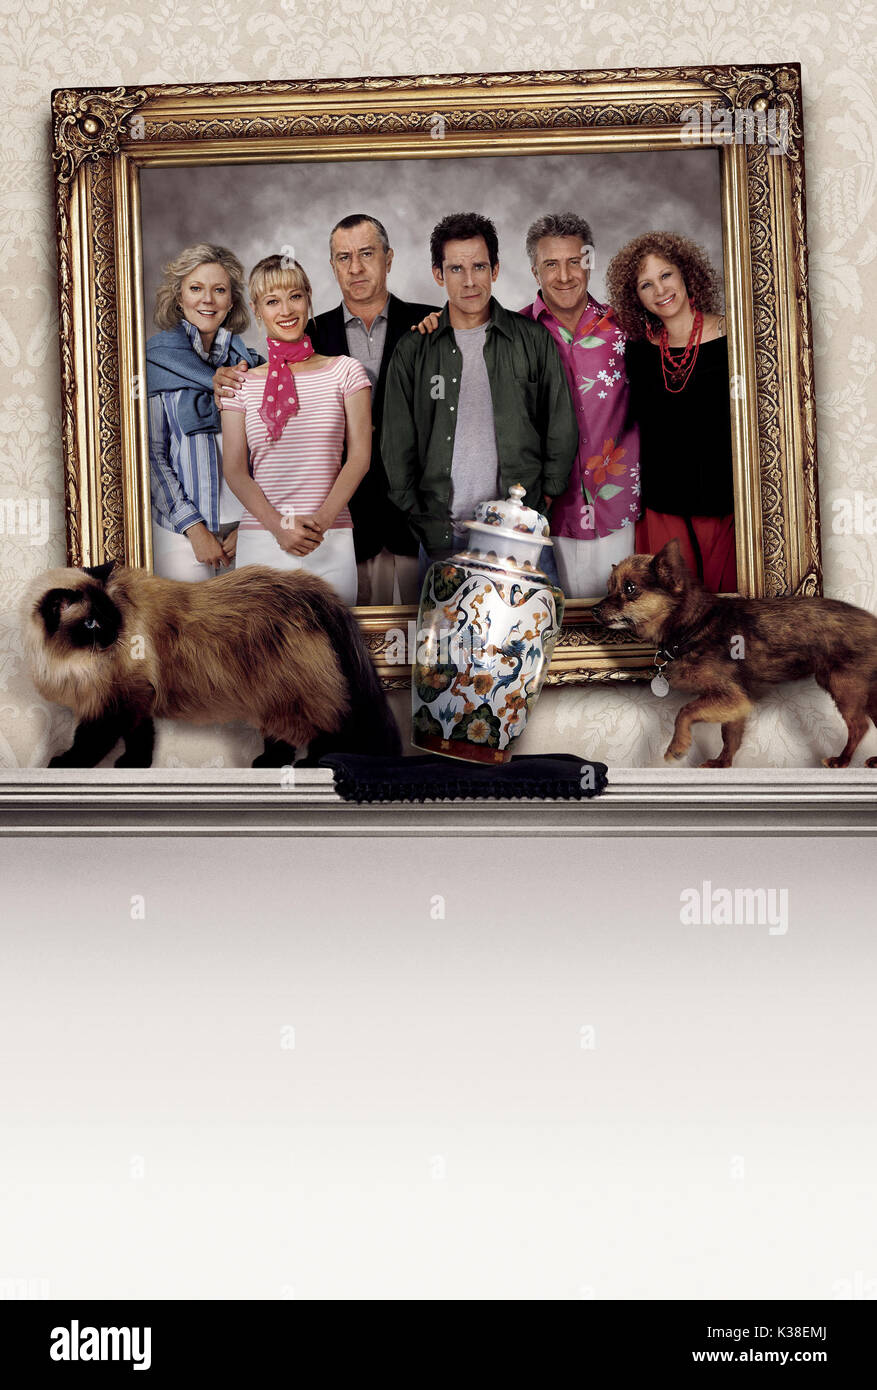 MEET THE FOCKERS POSTER     Date: 2004 - Stock Image